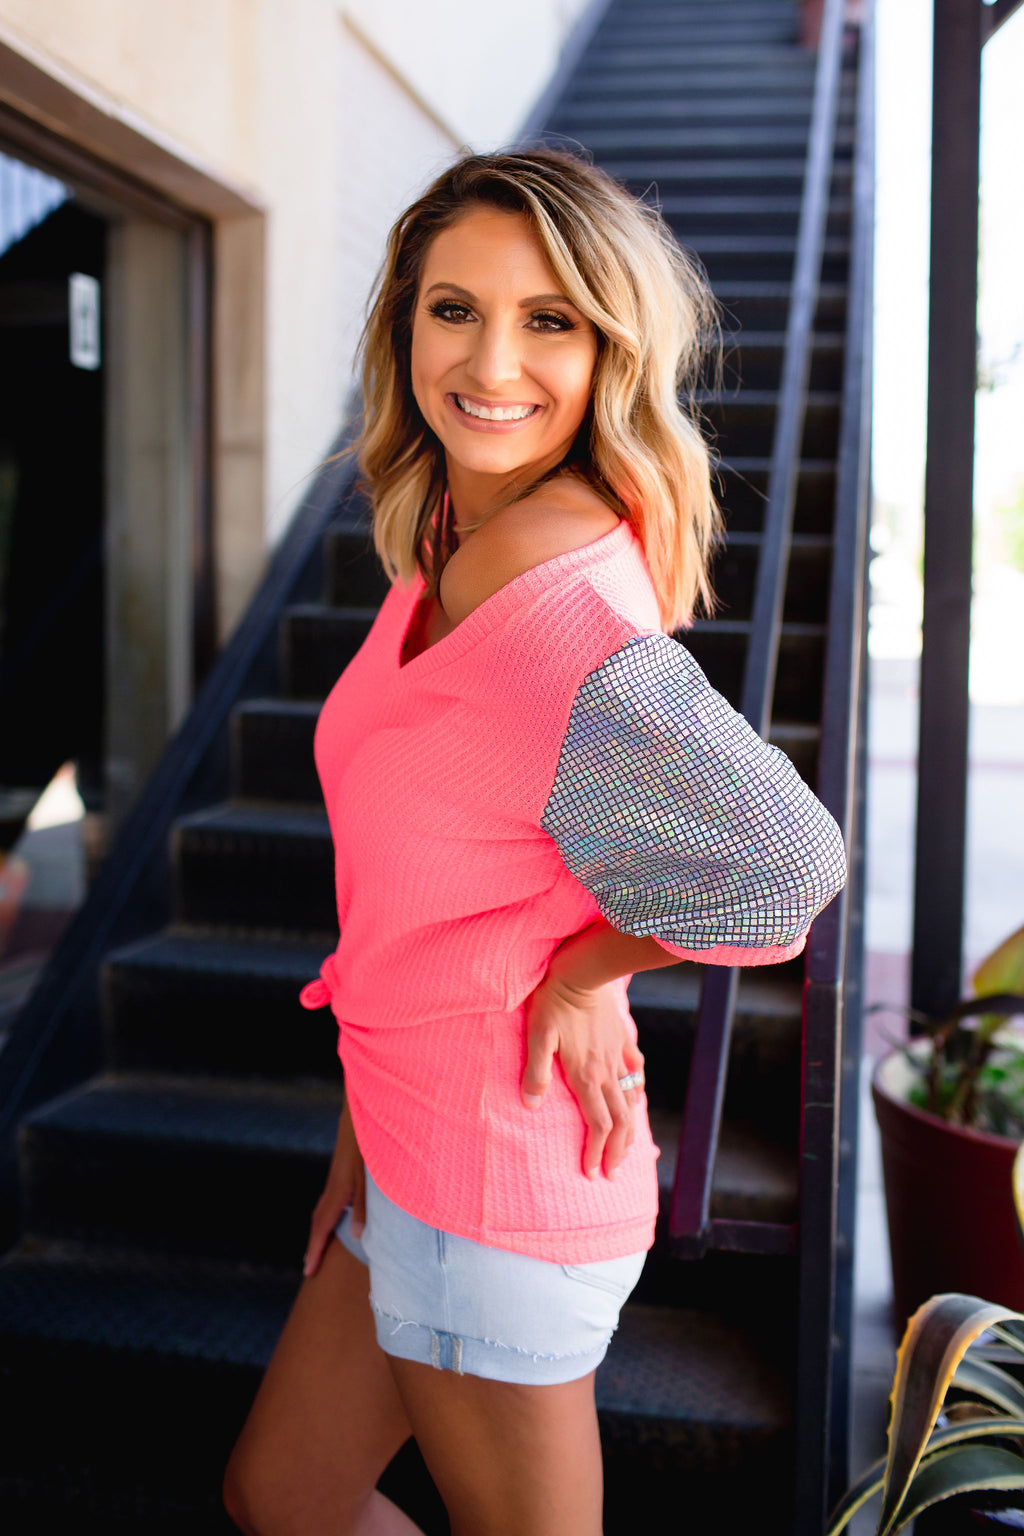 She's Gonna Run Sequin Sleeve Top - Neon Pink - West Avenue